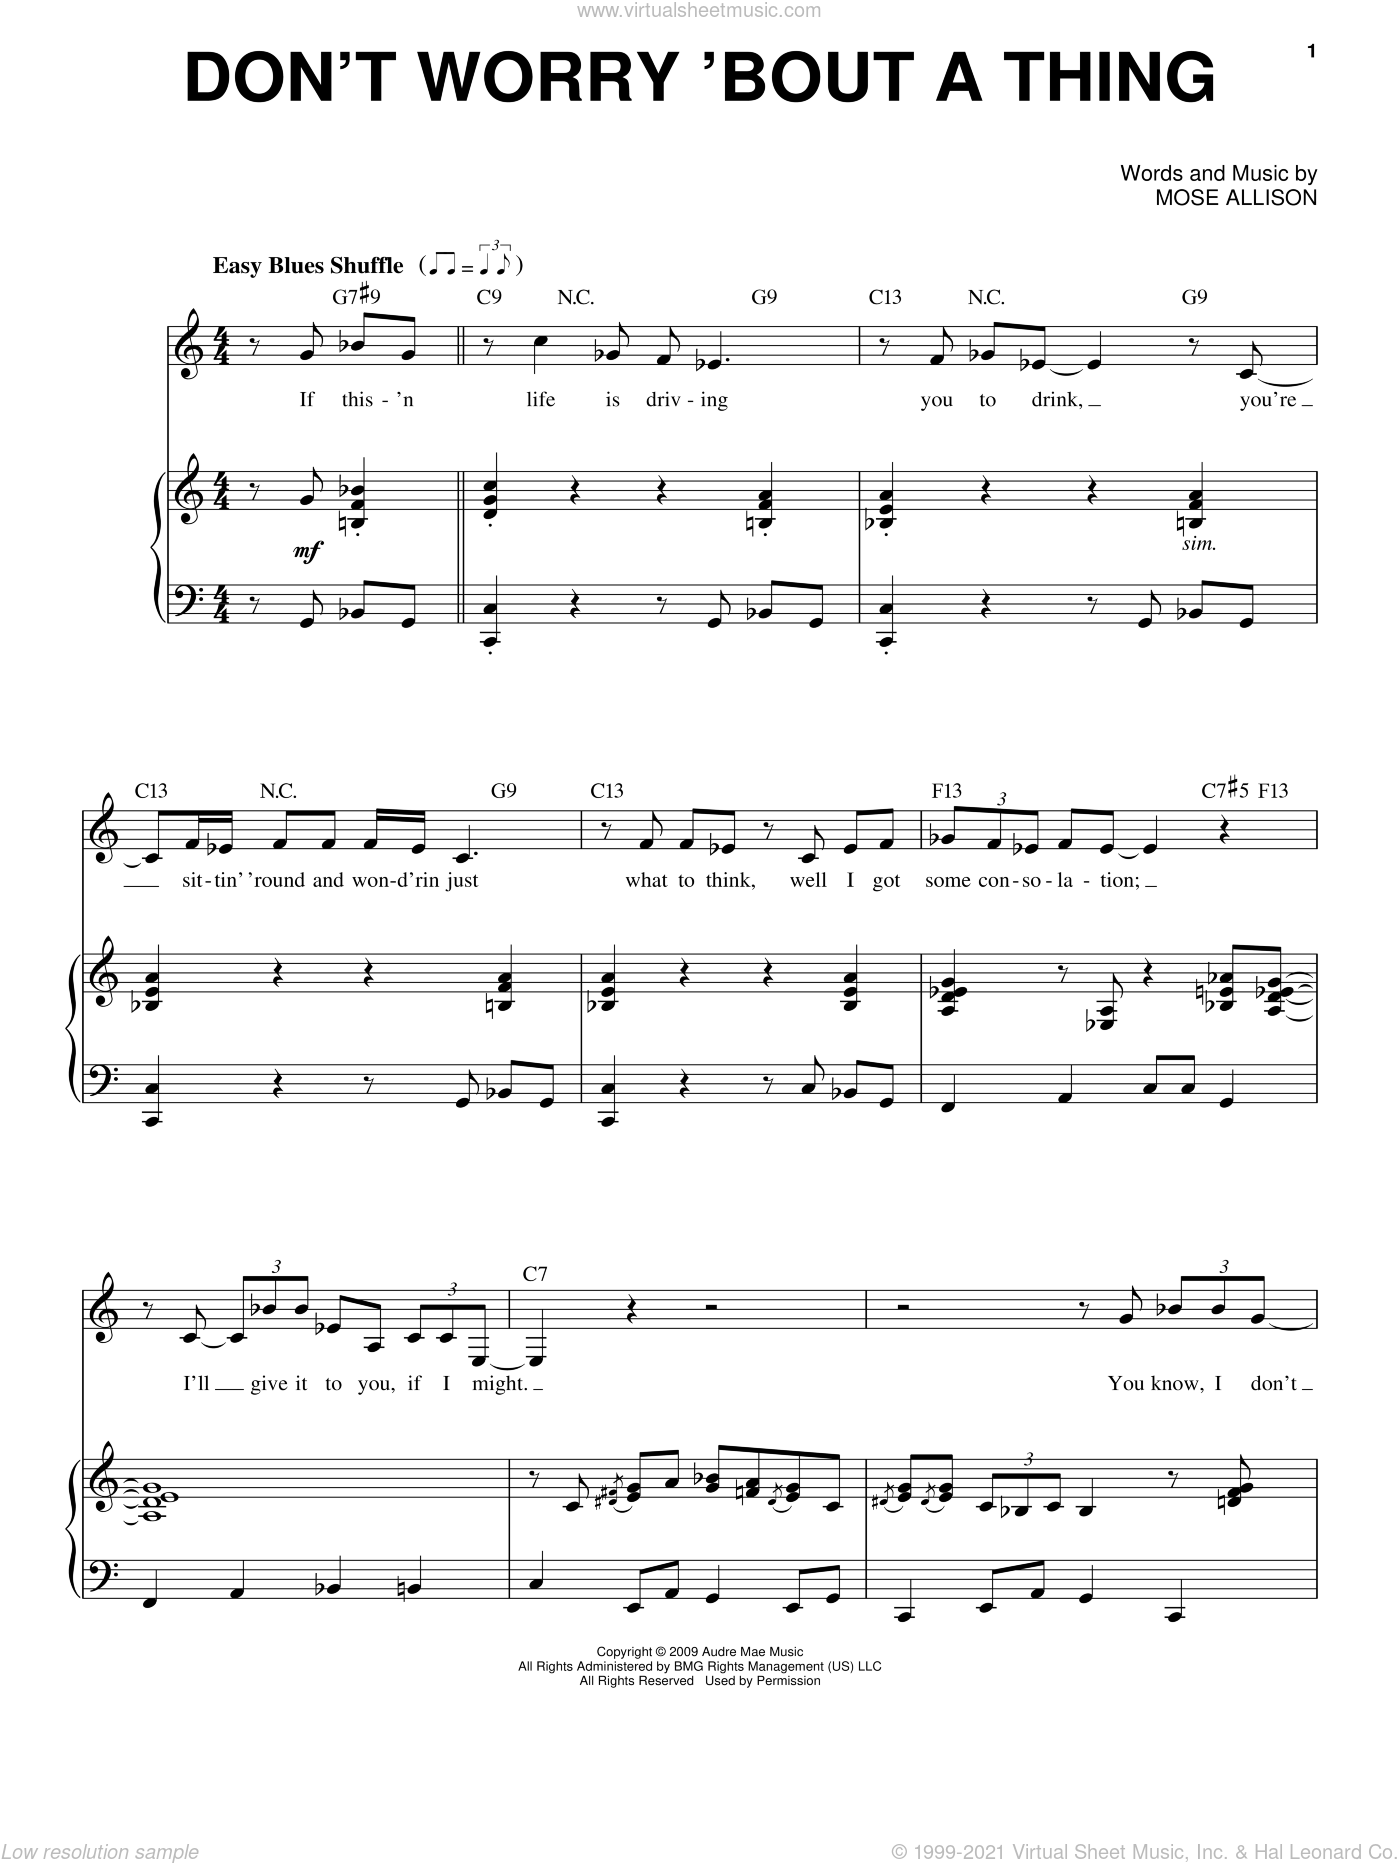 Don't Worry About A Thing sheet music for voice and piano by Mose Allison, intermediate skill level